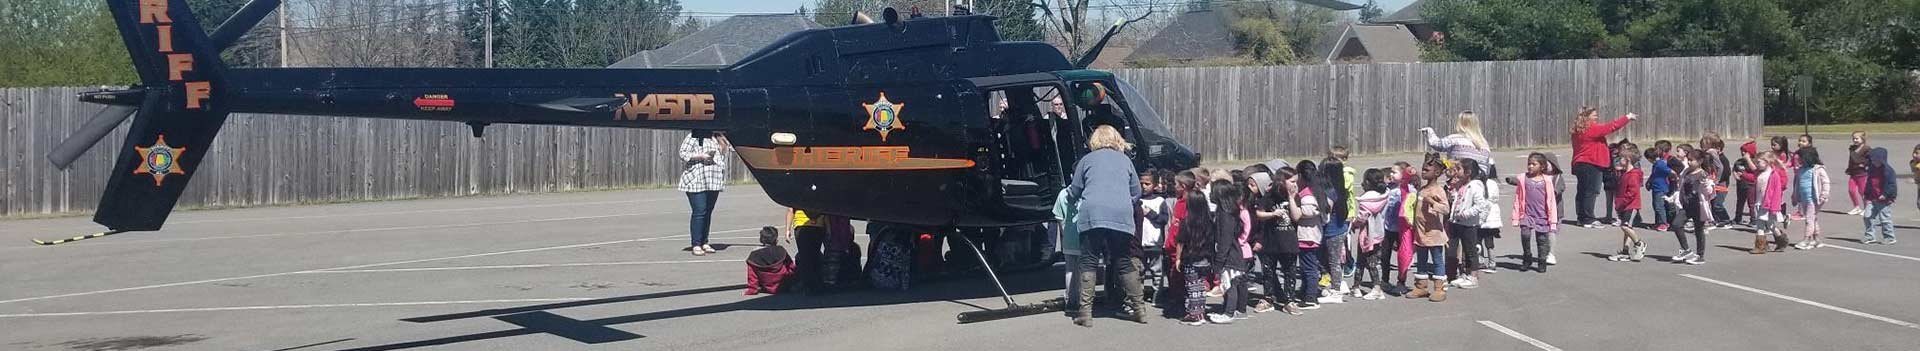 School children getting to look at the Sheriff helicopter